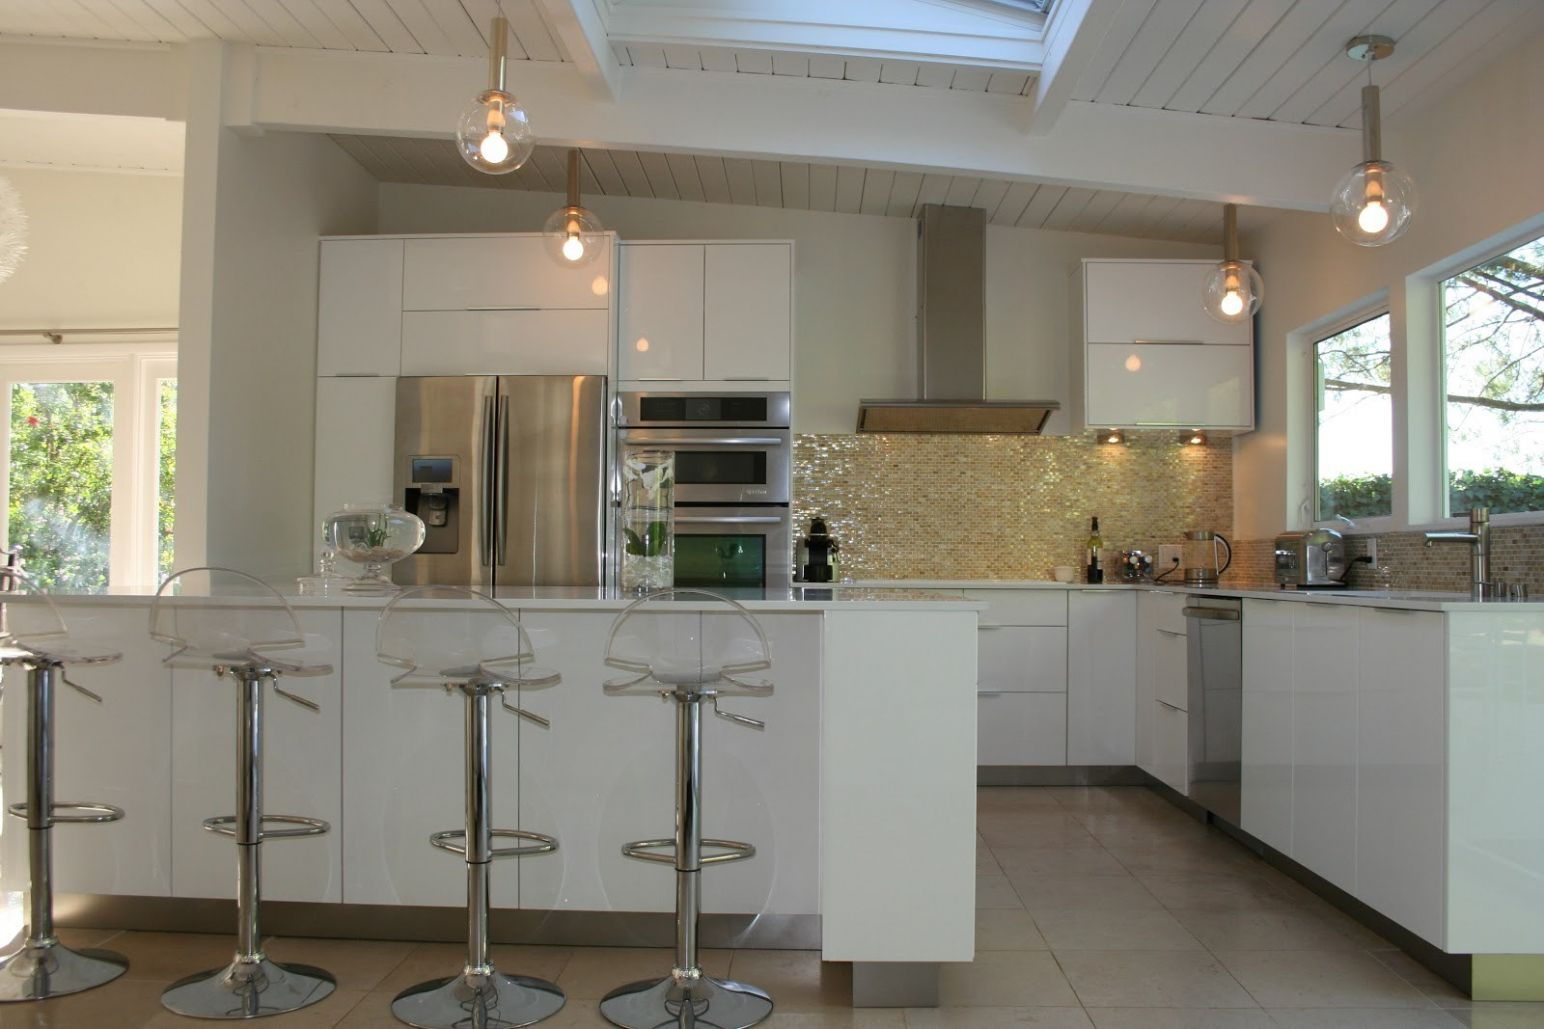 How Much Does An Ikea Kitchen Remodel Cost Kitchen Track - How much does an ikea kitchen remodel cost